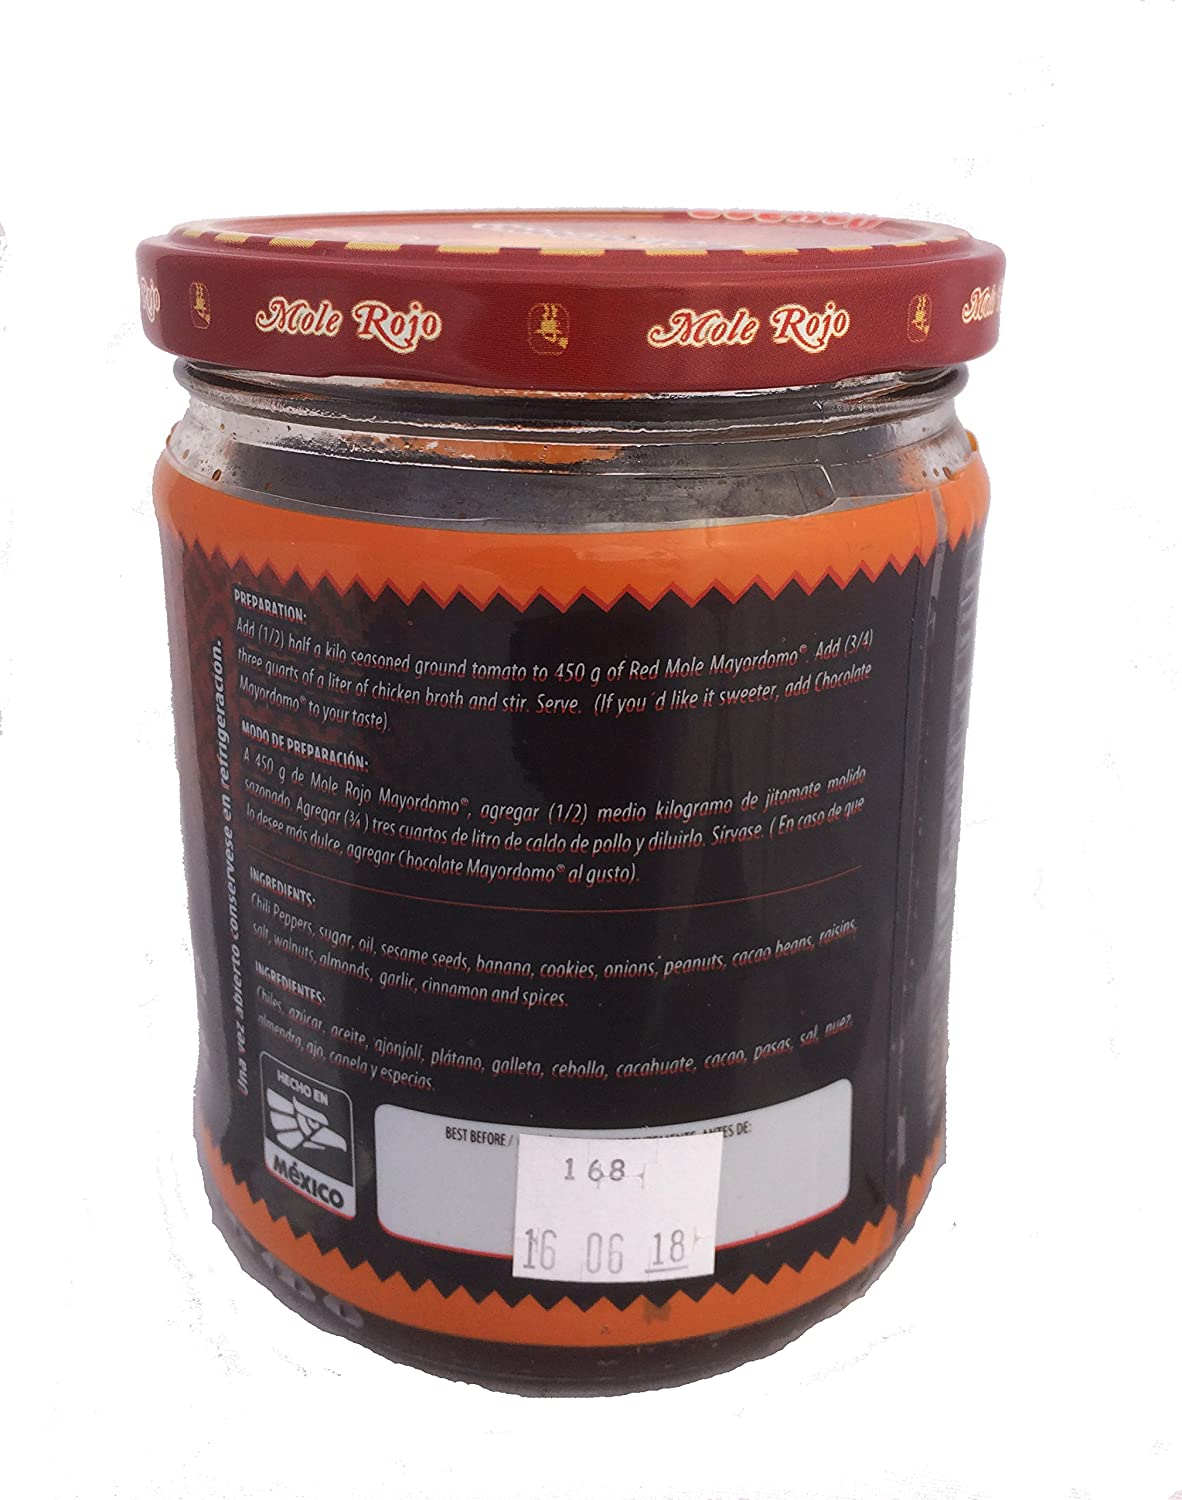 Amazon.com : Mole Rojo Mayordomo 450 gr (Red Mexican Mole Sauce) (2 Jar) : Grocery & Gourmet Food